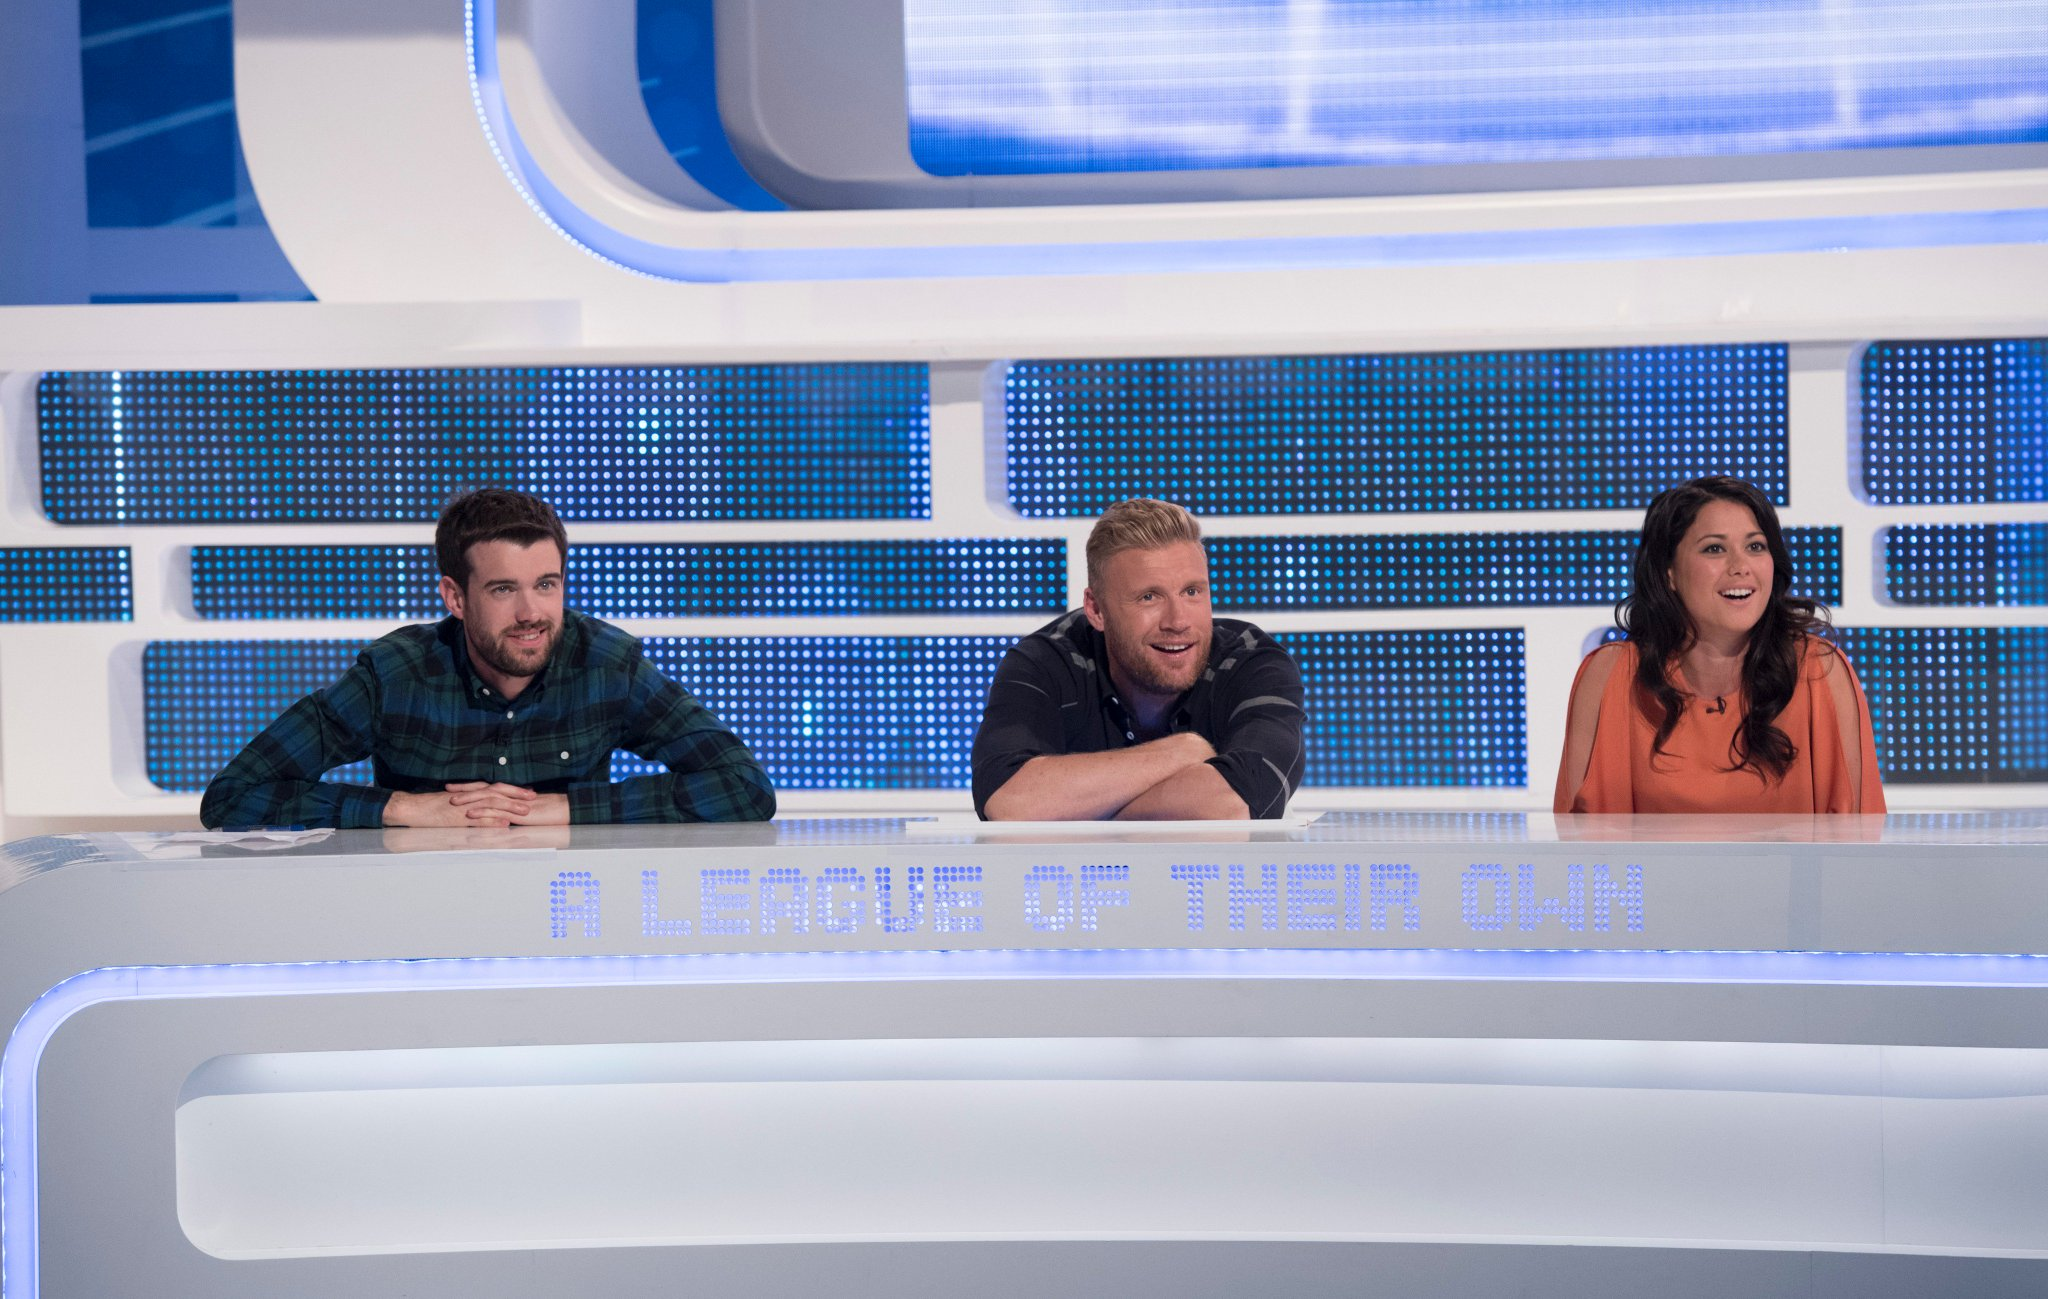 Only one more day! A League Of Their Own continues tomorrow night on @sky1 @ALOTO https://t.co/T8lusMLu4D